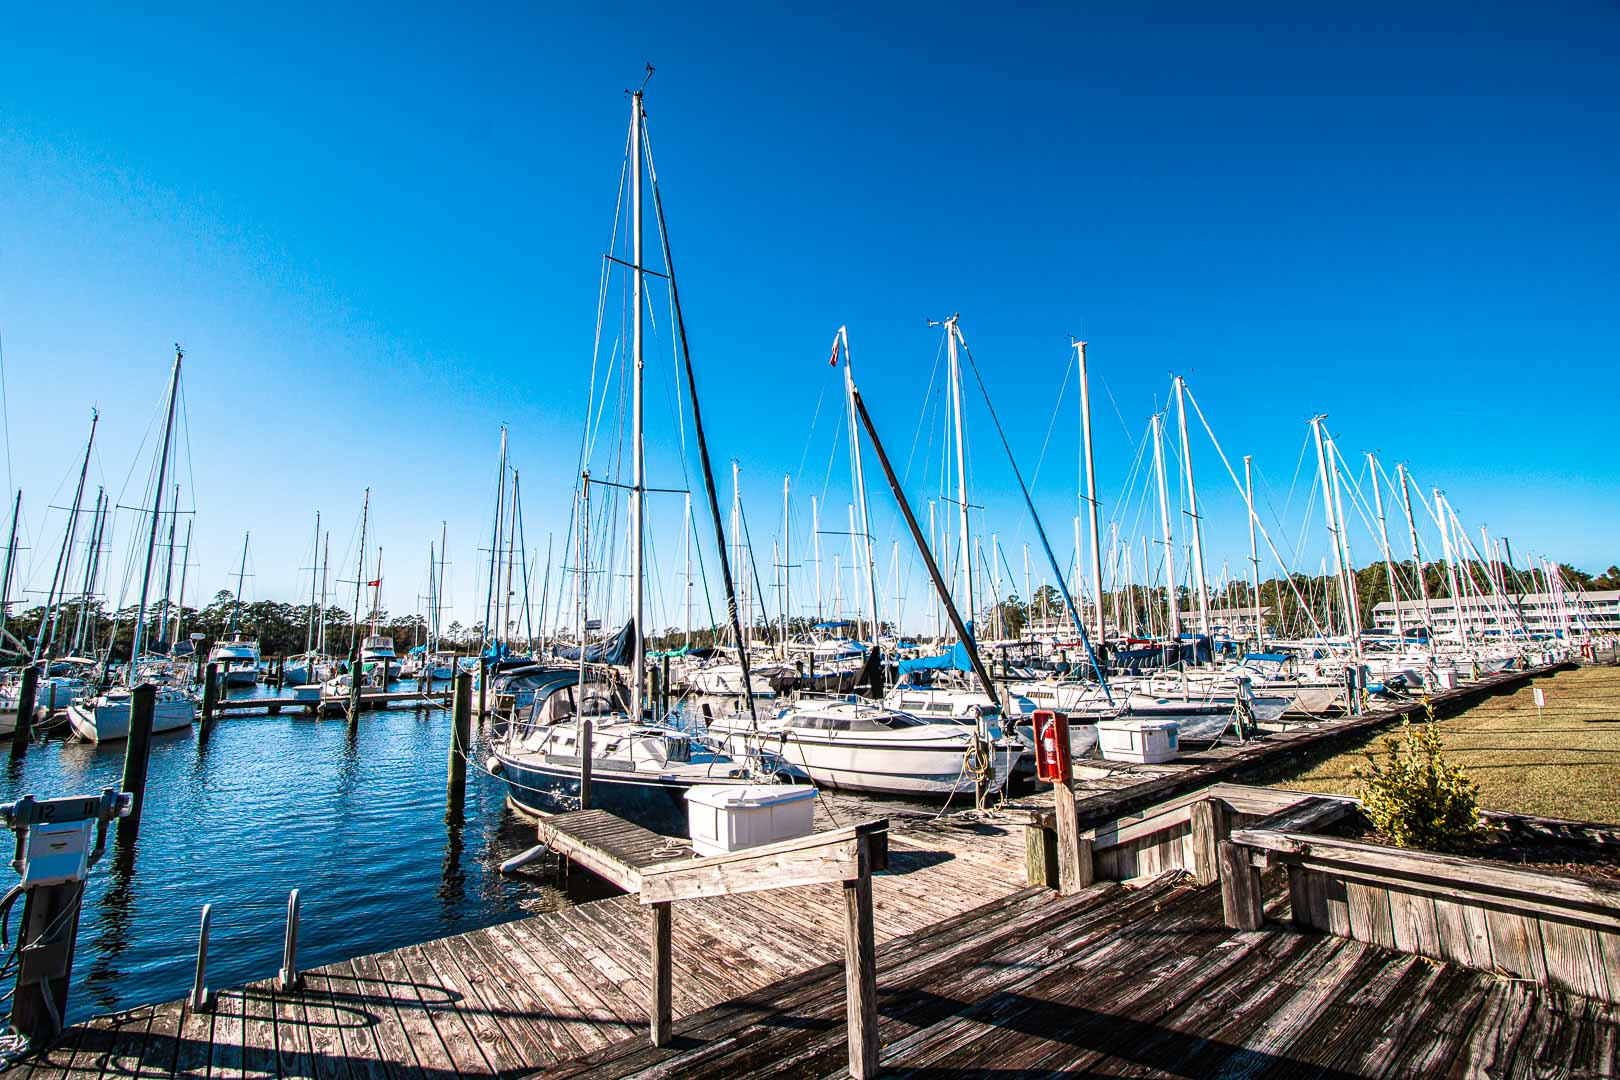 A relaxing view of the boat dock from VRI's Sandcastle Village in New Bern, North Carolina.